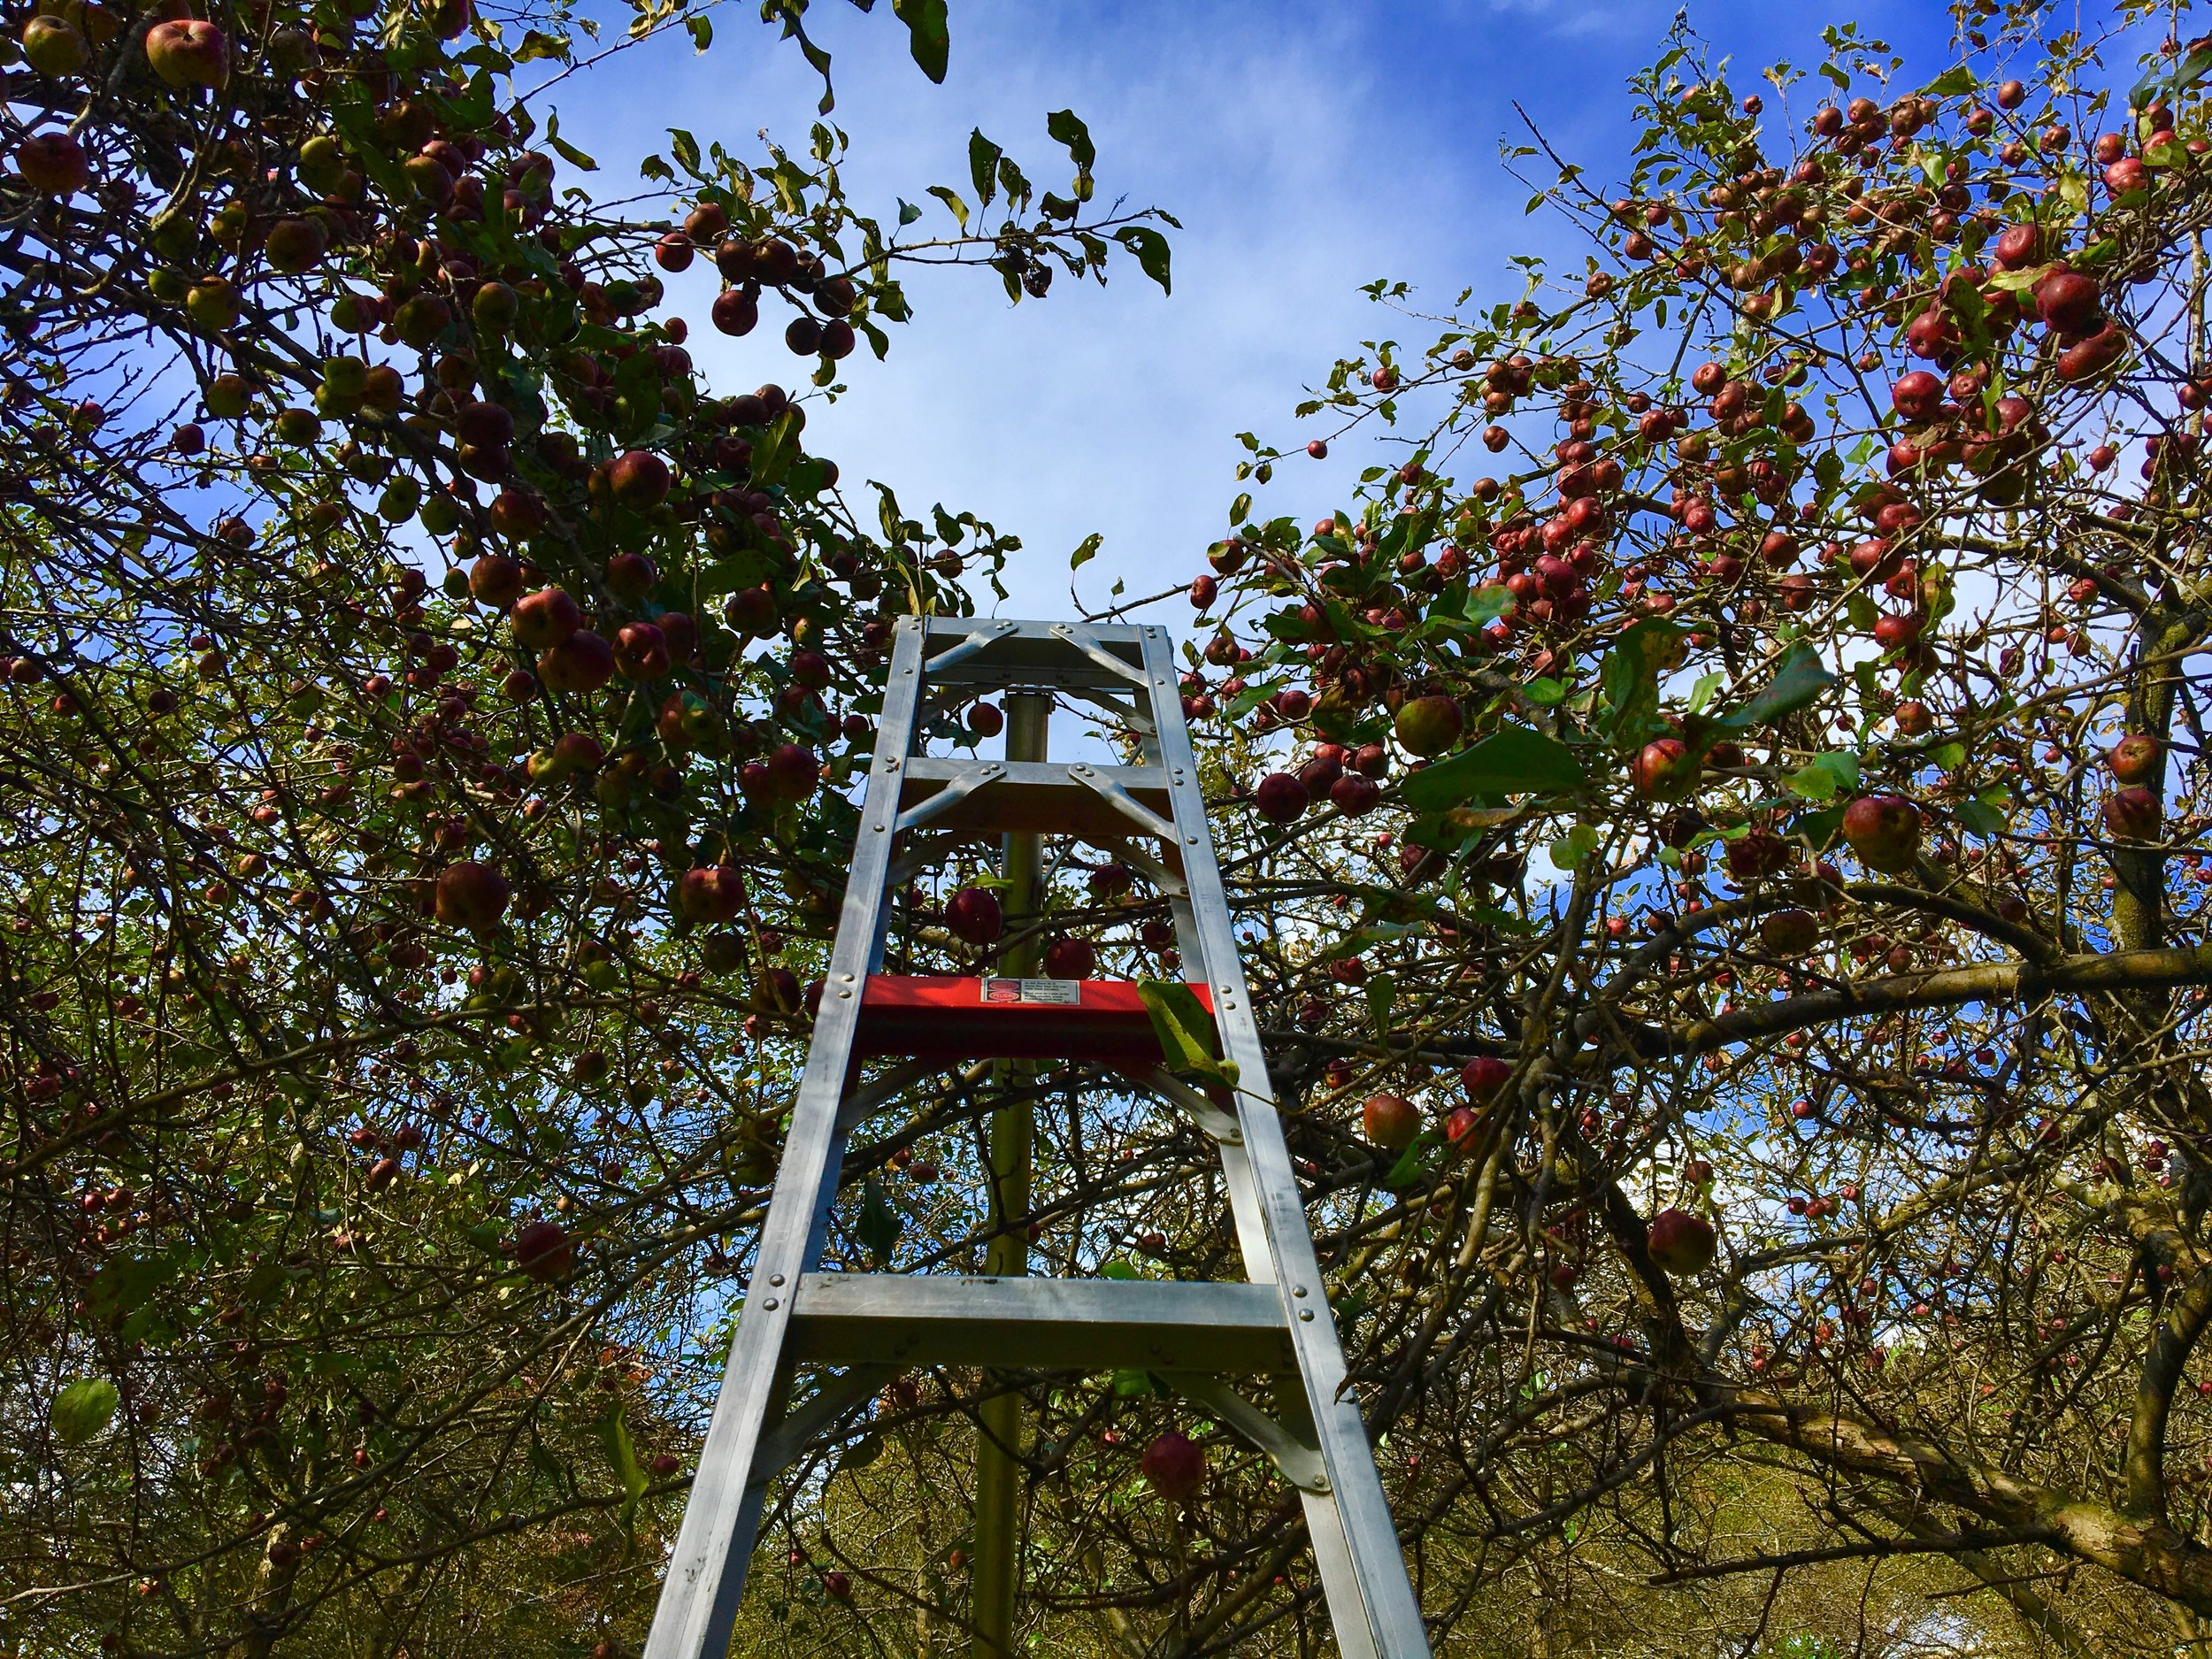 Above: Metaphorical ladder to the sky (and to apples)